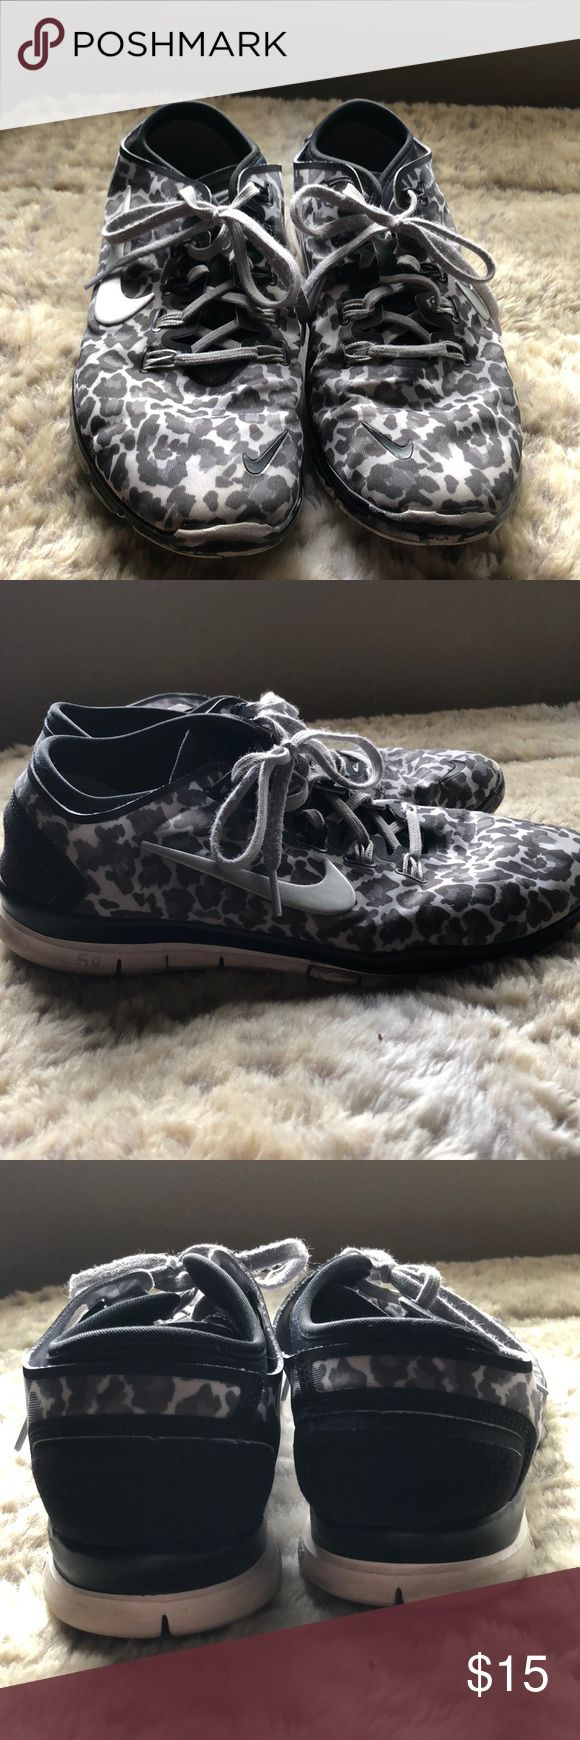 Nike Leopard Print Tennis Shoes In good condition! The front is worn on both shoes as seen above. Nike Shoes Athletic Shoes